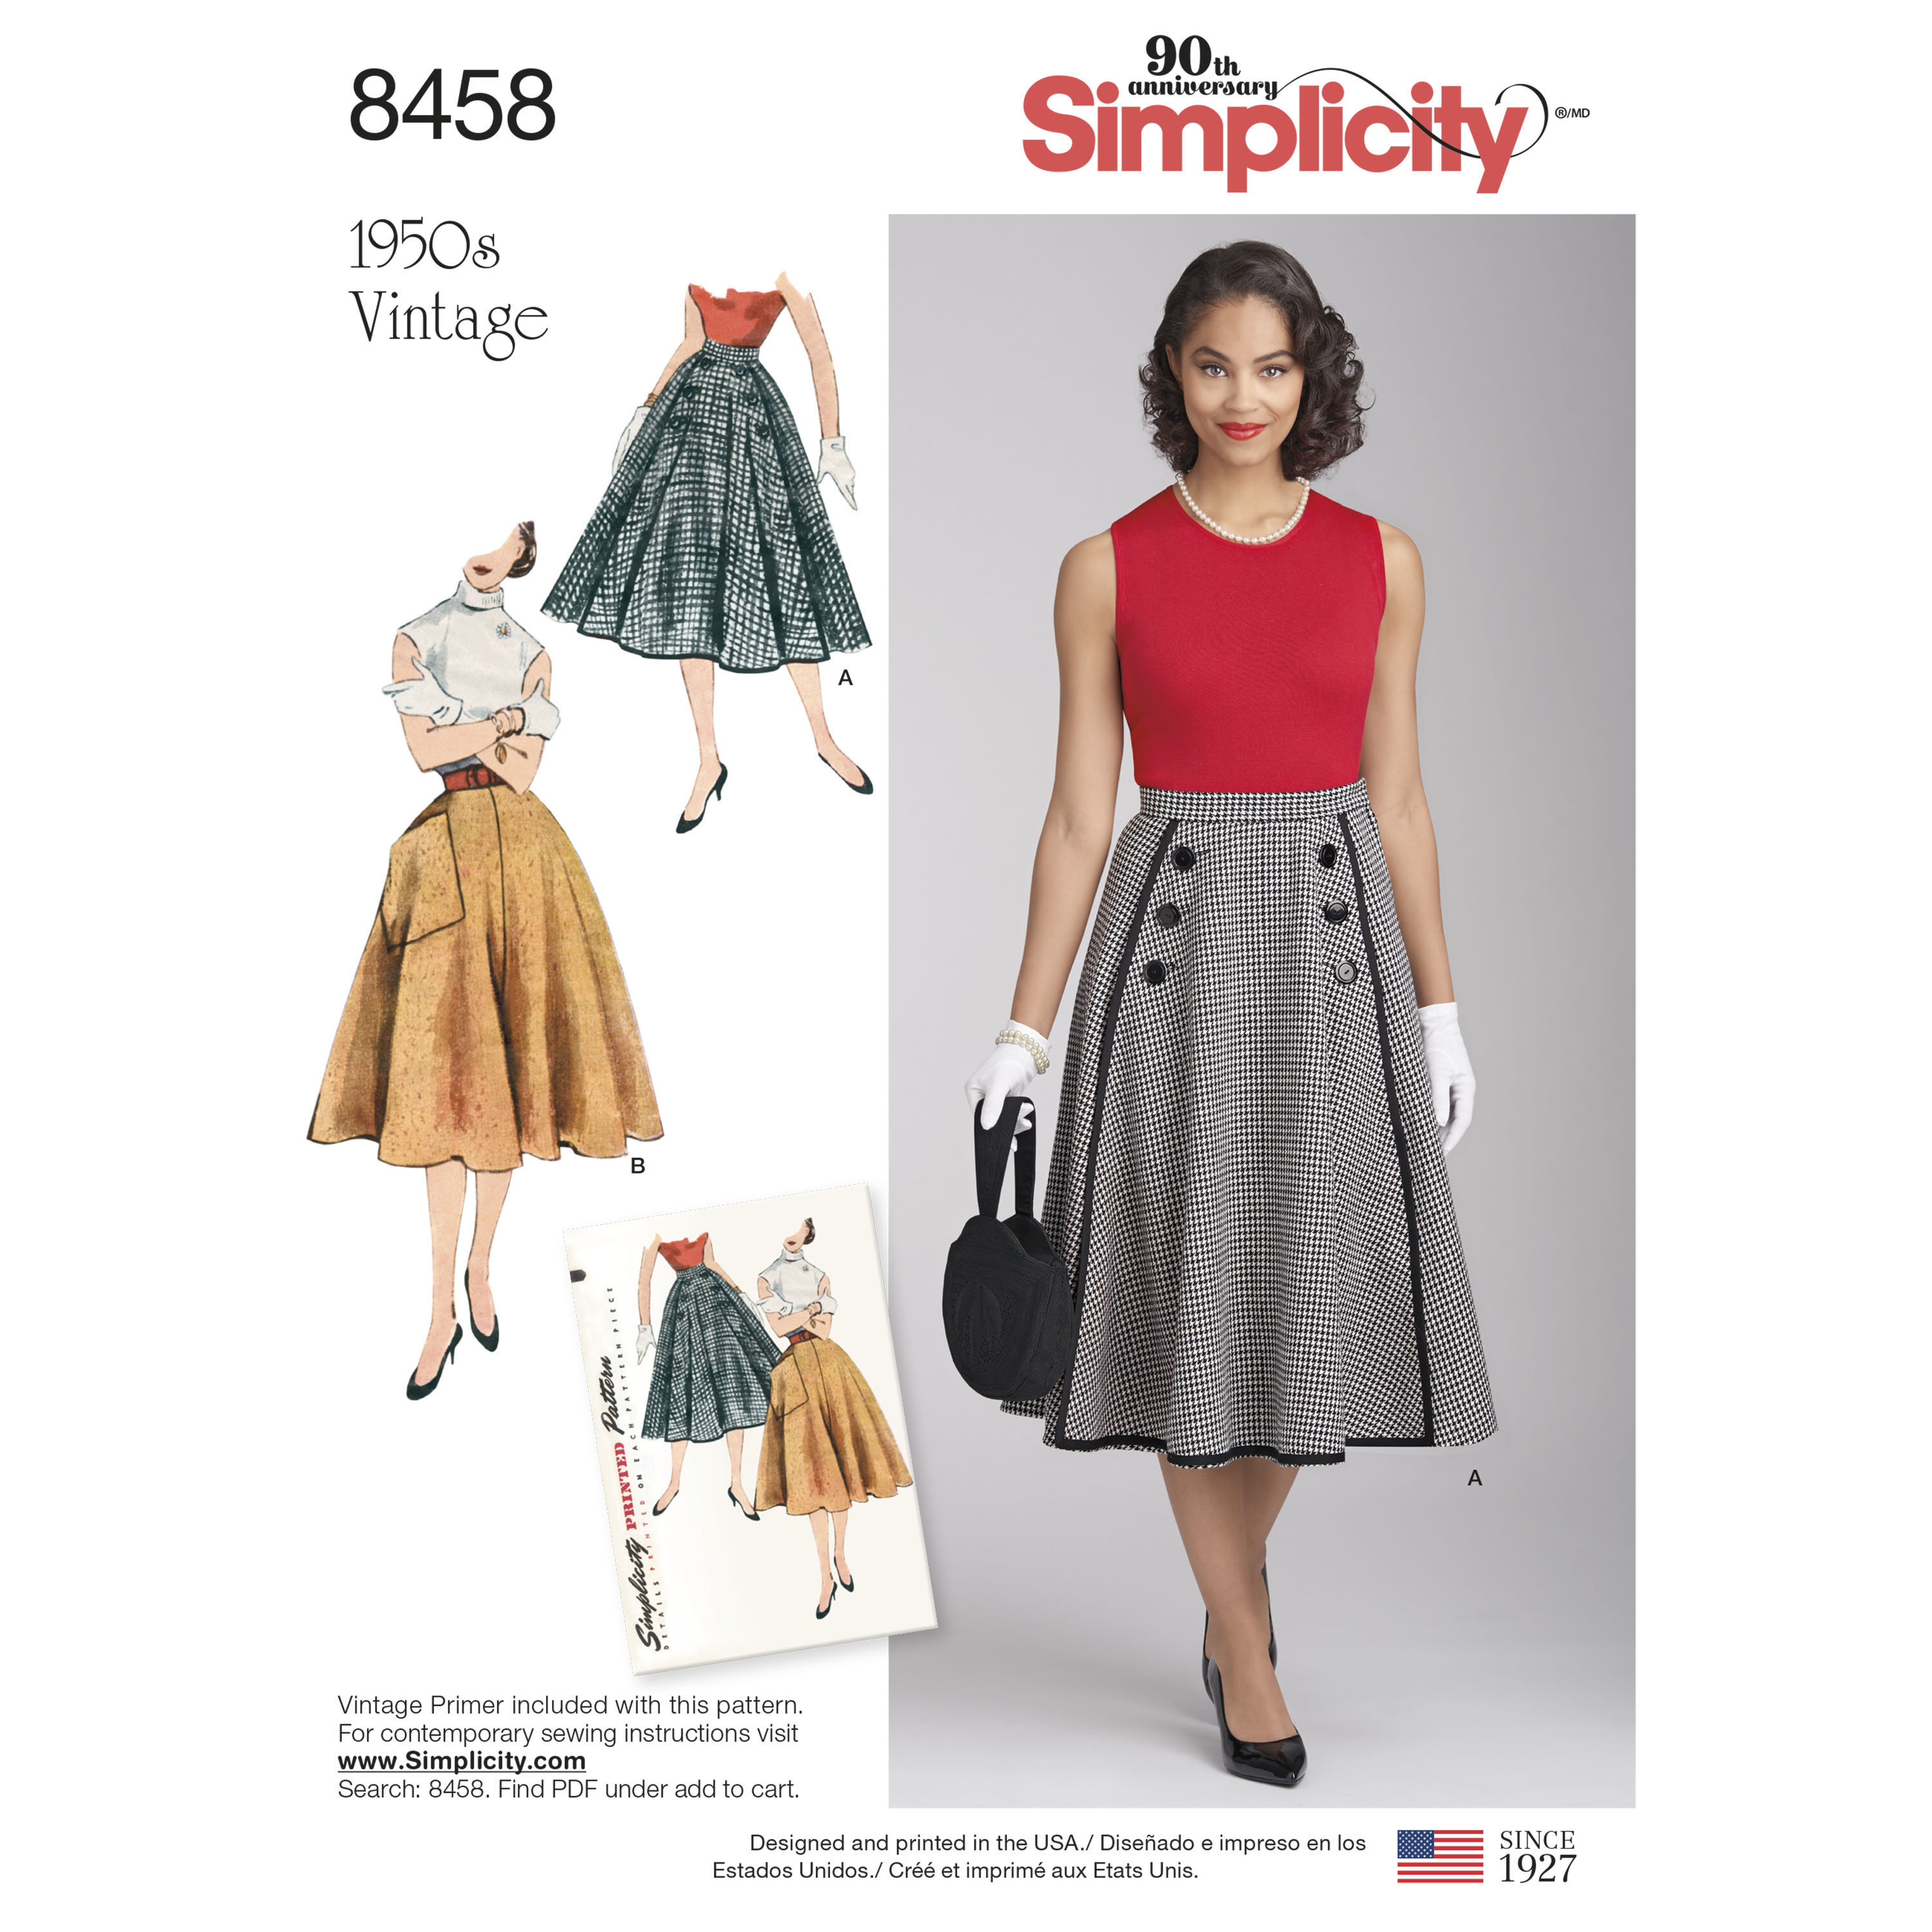 Simplicity Skirt Patterns Awesome Design